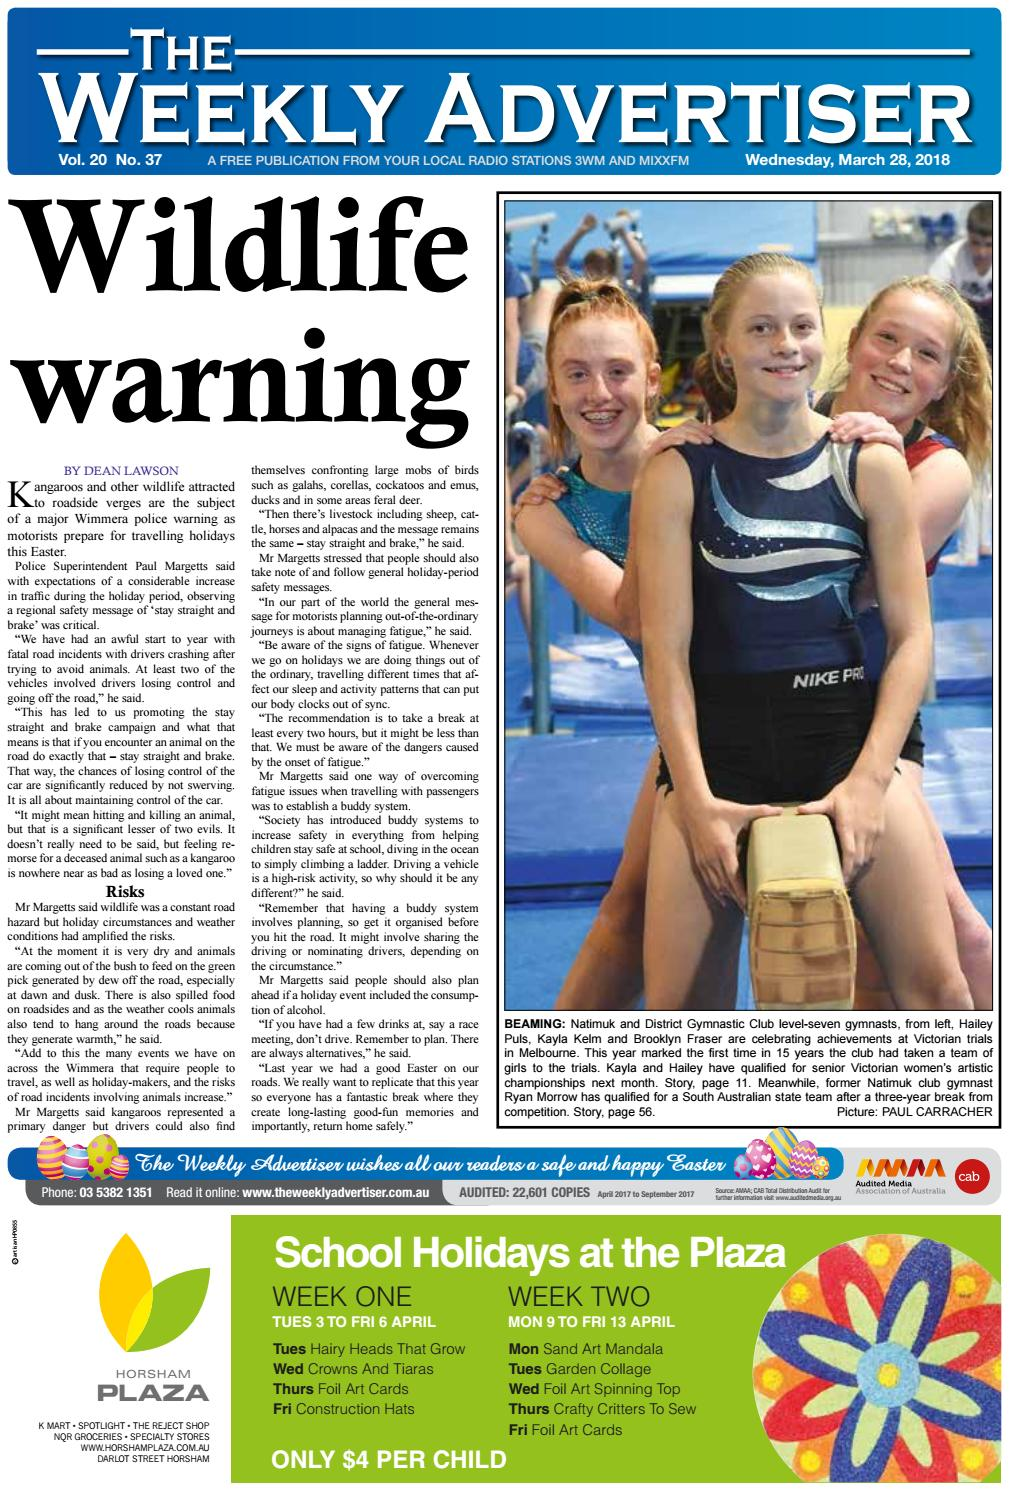 2c98ab4714b The Weekly Advertiser - Wednesday